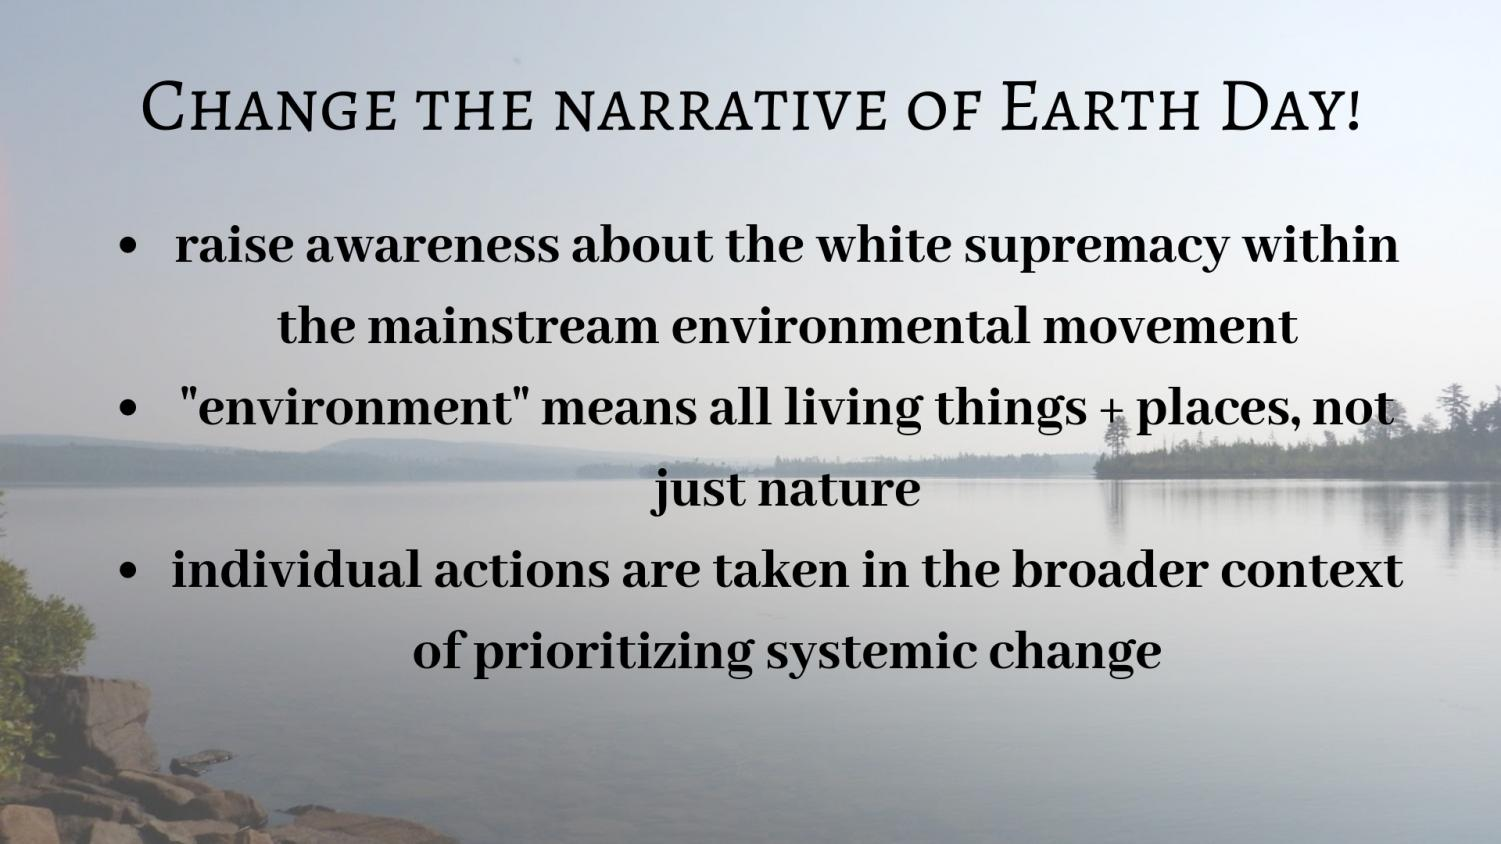 Earth Day has a history of being exclusive to white, privileged people and today the way it is marketed perpetuates this trend. The narrative of Earth Day is centered around people showcasing their wilderness trips and focusing more heavily on individual eco-friendly lifestyle changes that are often inaccessible instead of recognizing and fighting the systems that create environmental problems.